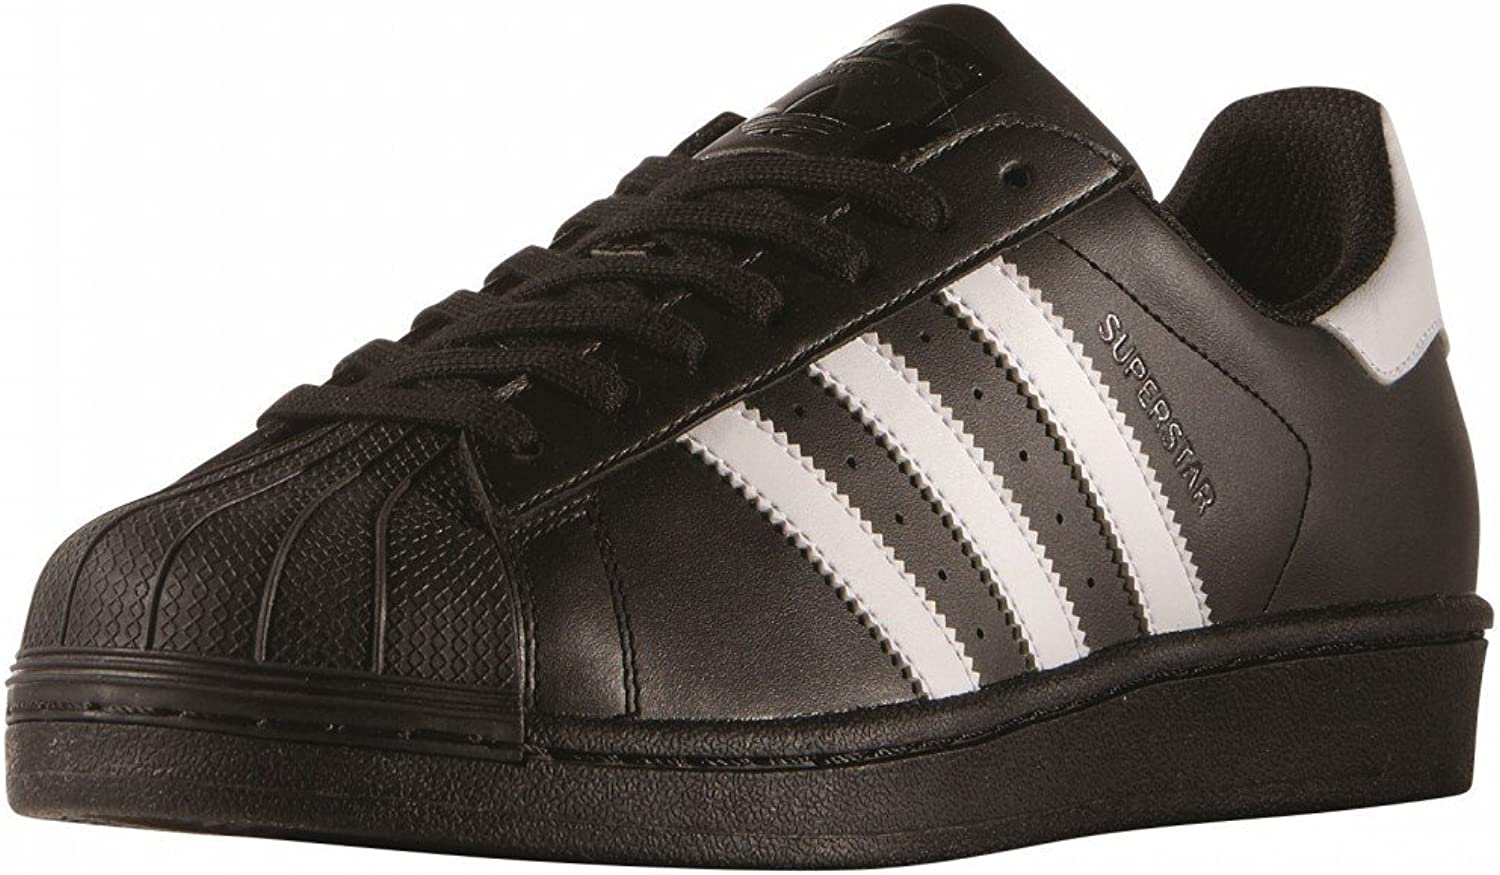 Maligno Perth Alojamiento  Amazon.com | adidas Men's Superstar Foundation Shoes | Fashion Sneakers